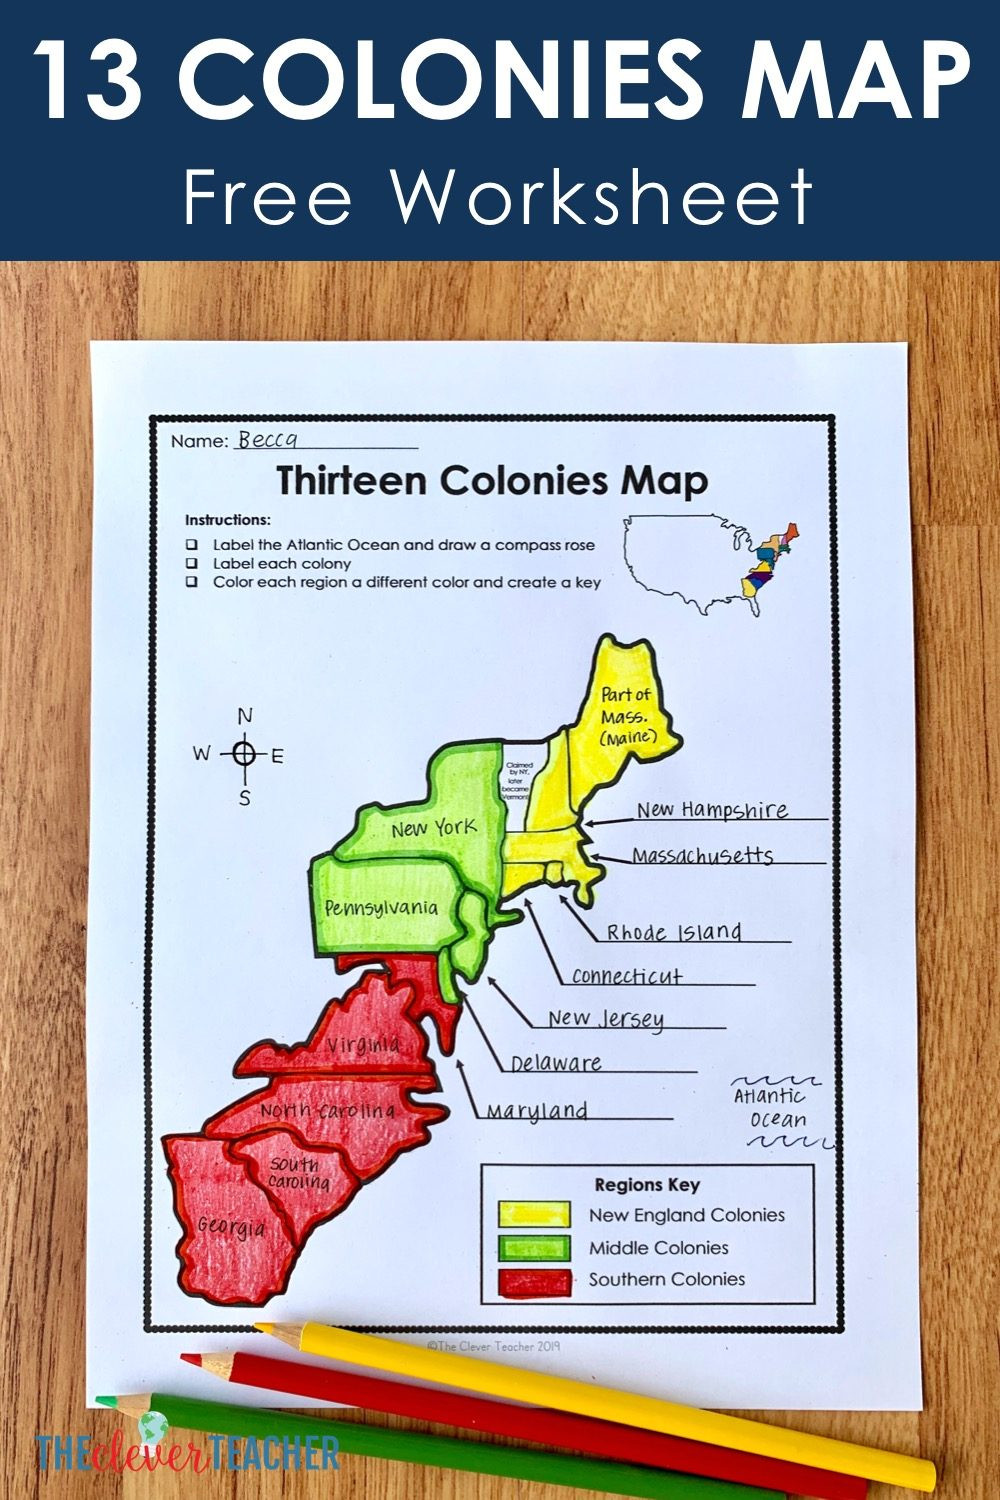 13 Colonies Free Map Worksheet and Lesson for students